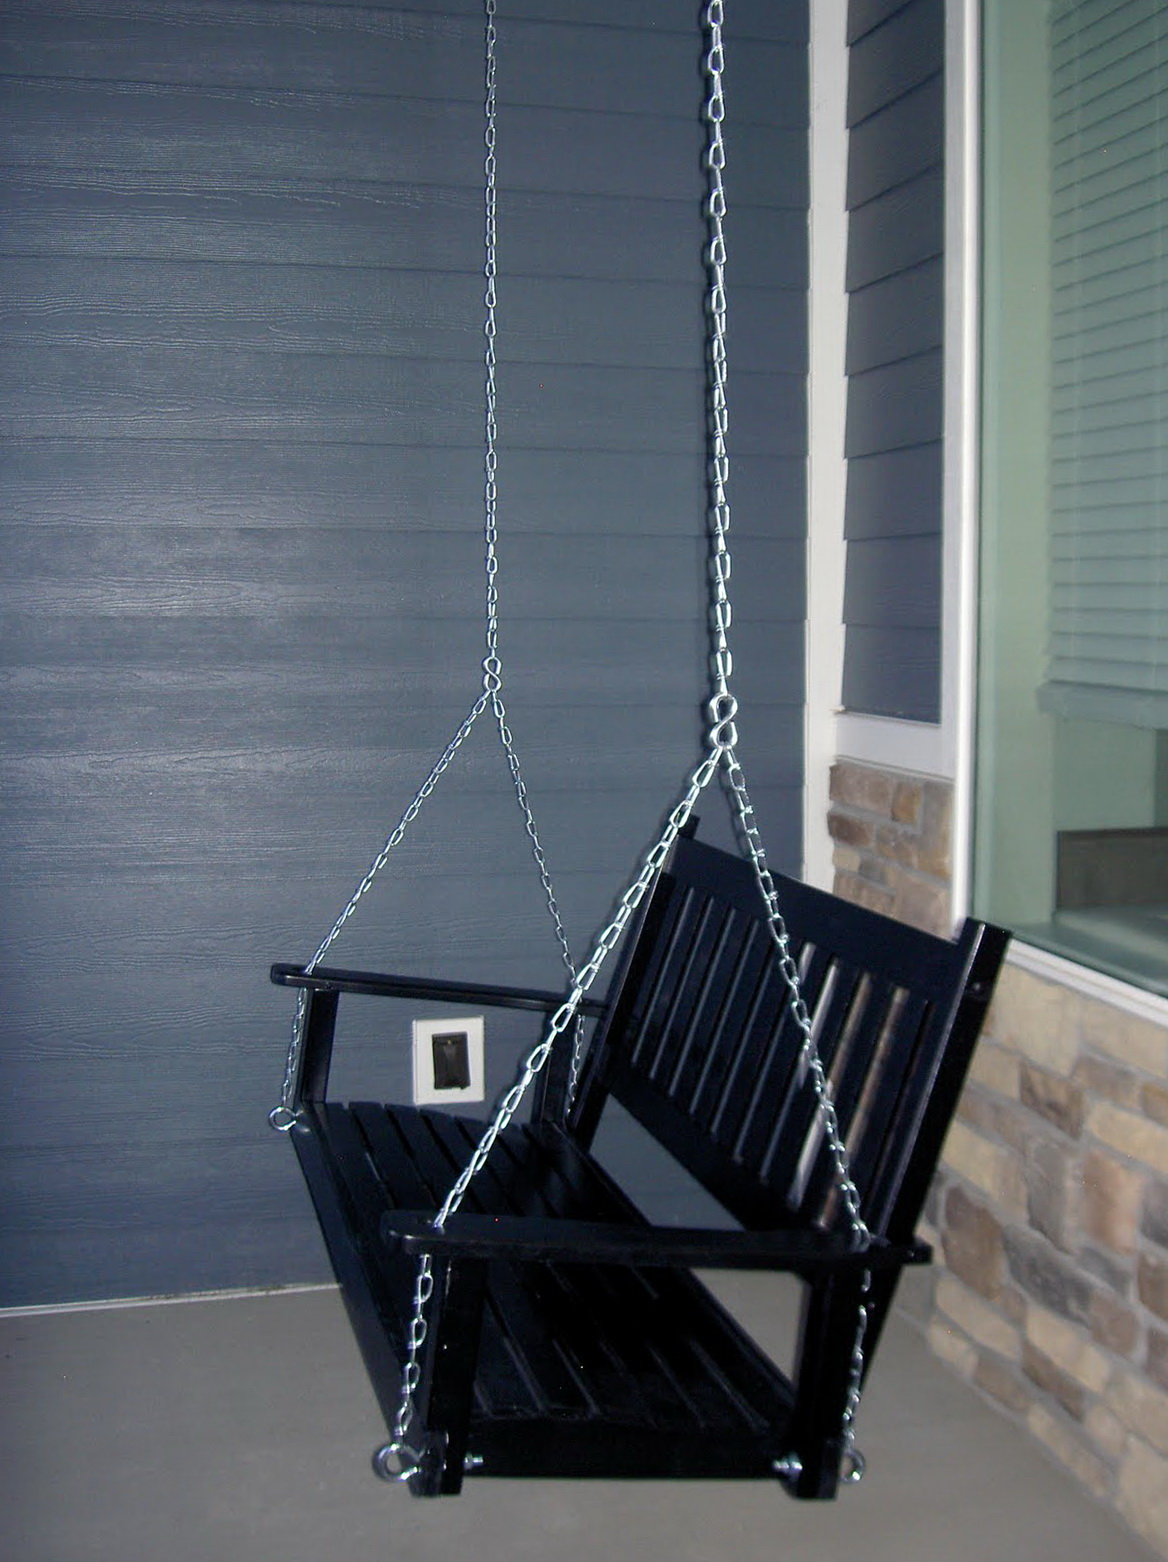 set swing porch hardware throughout with inviting design ideas regard chains stylish chain to